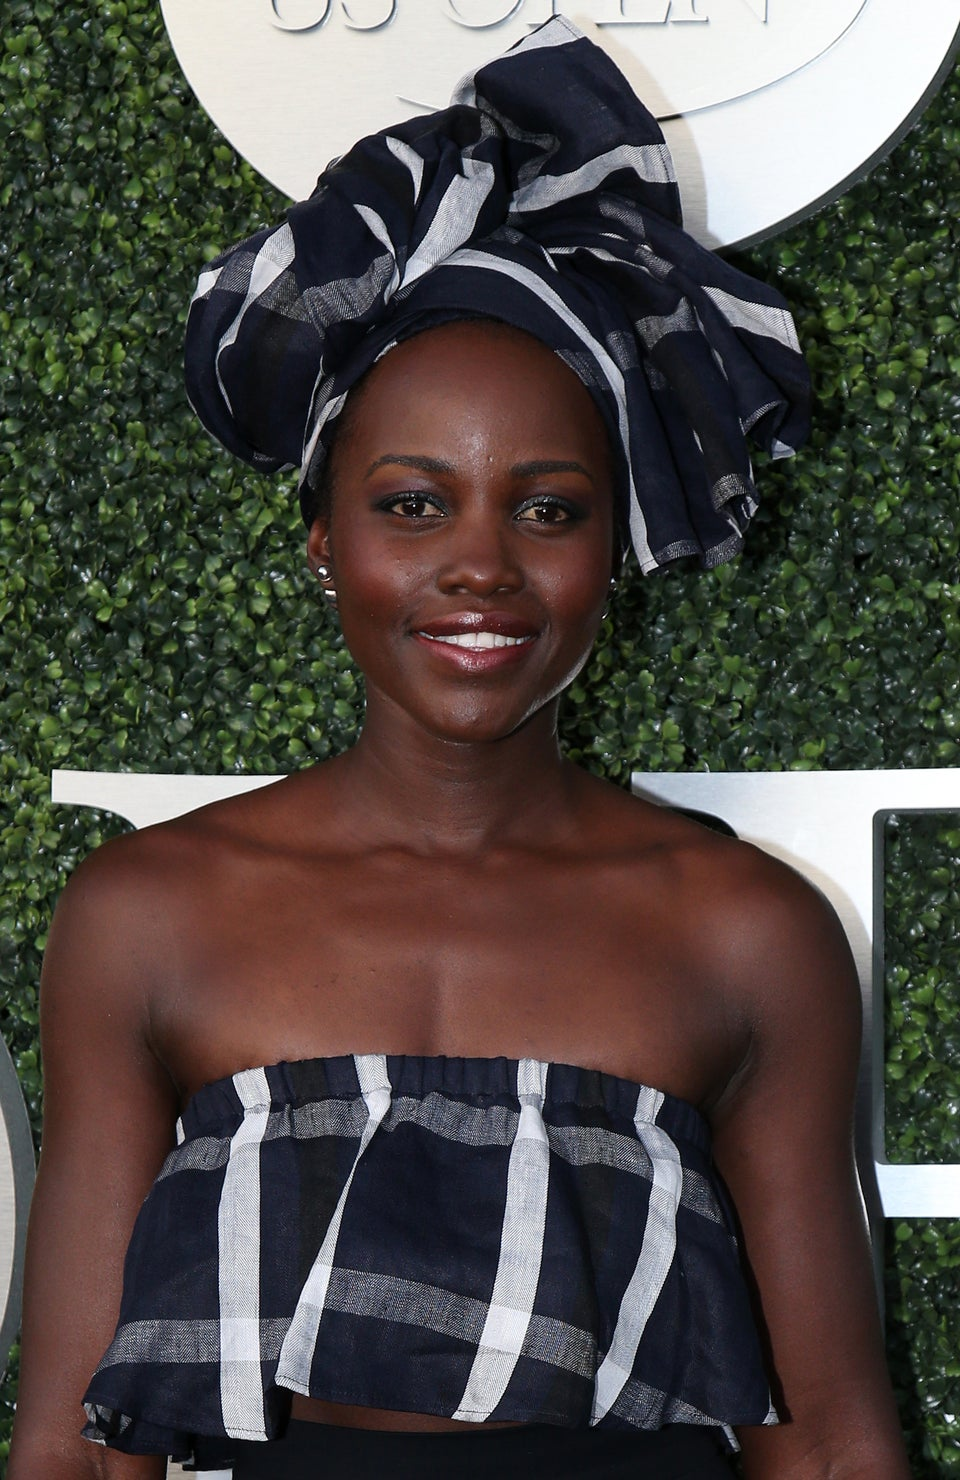 Look of the Day: Lupita Nyong'o Slays in Printed Top and Headwrap